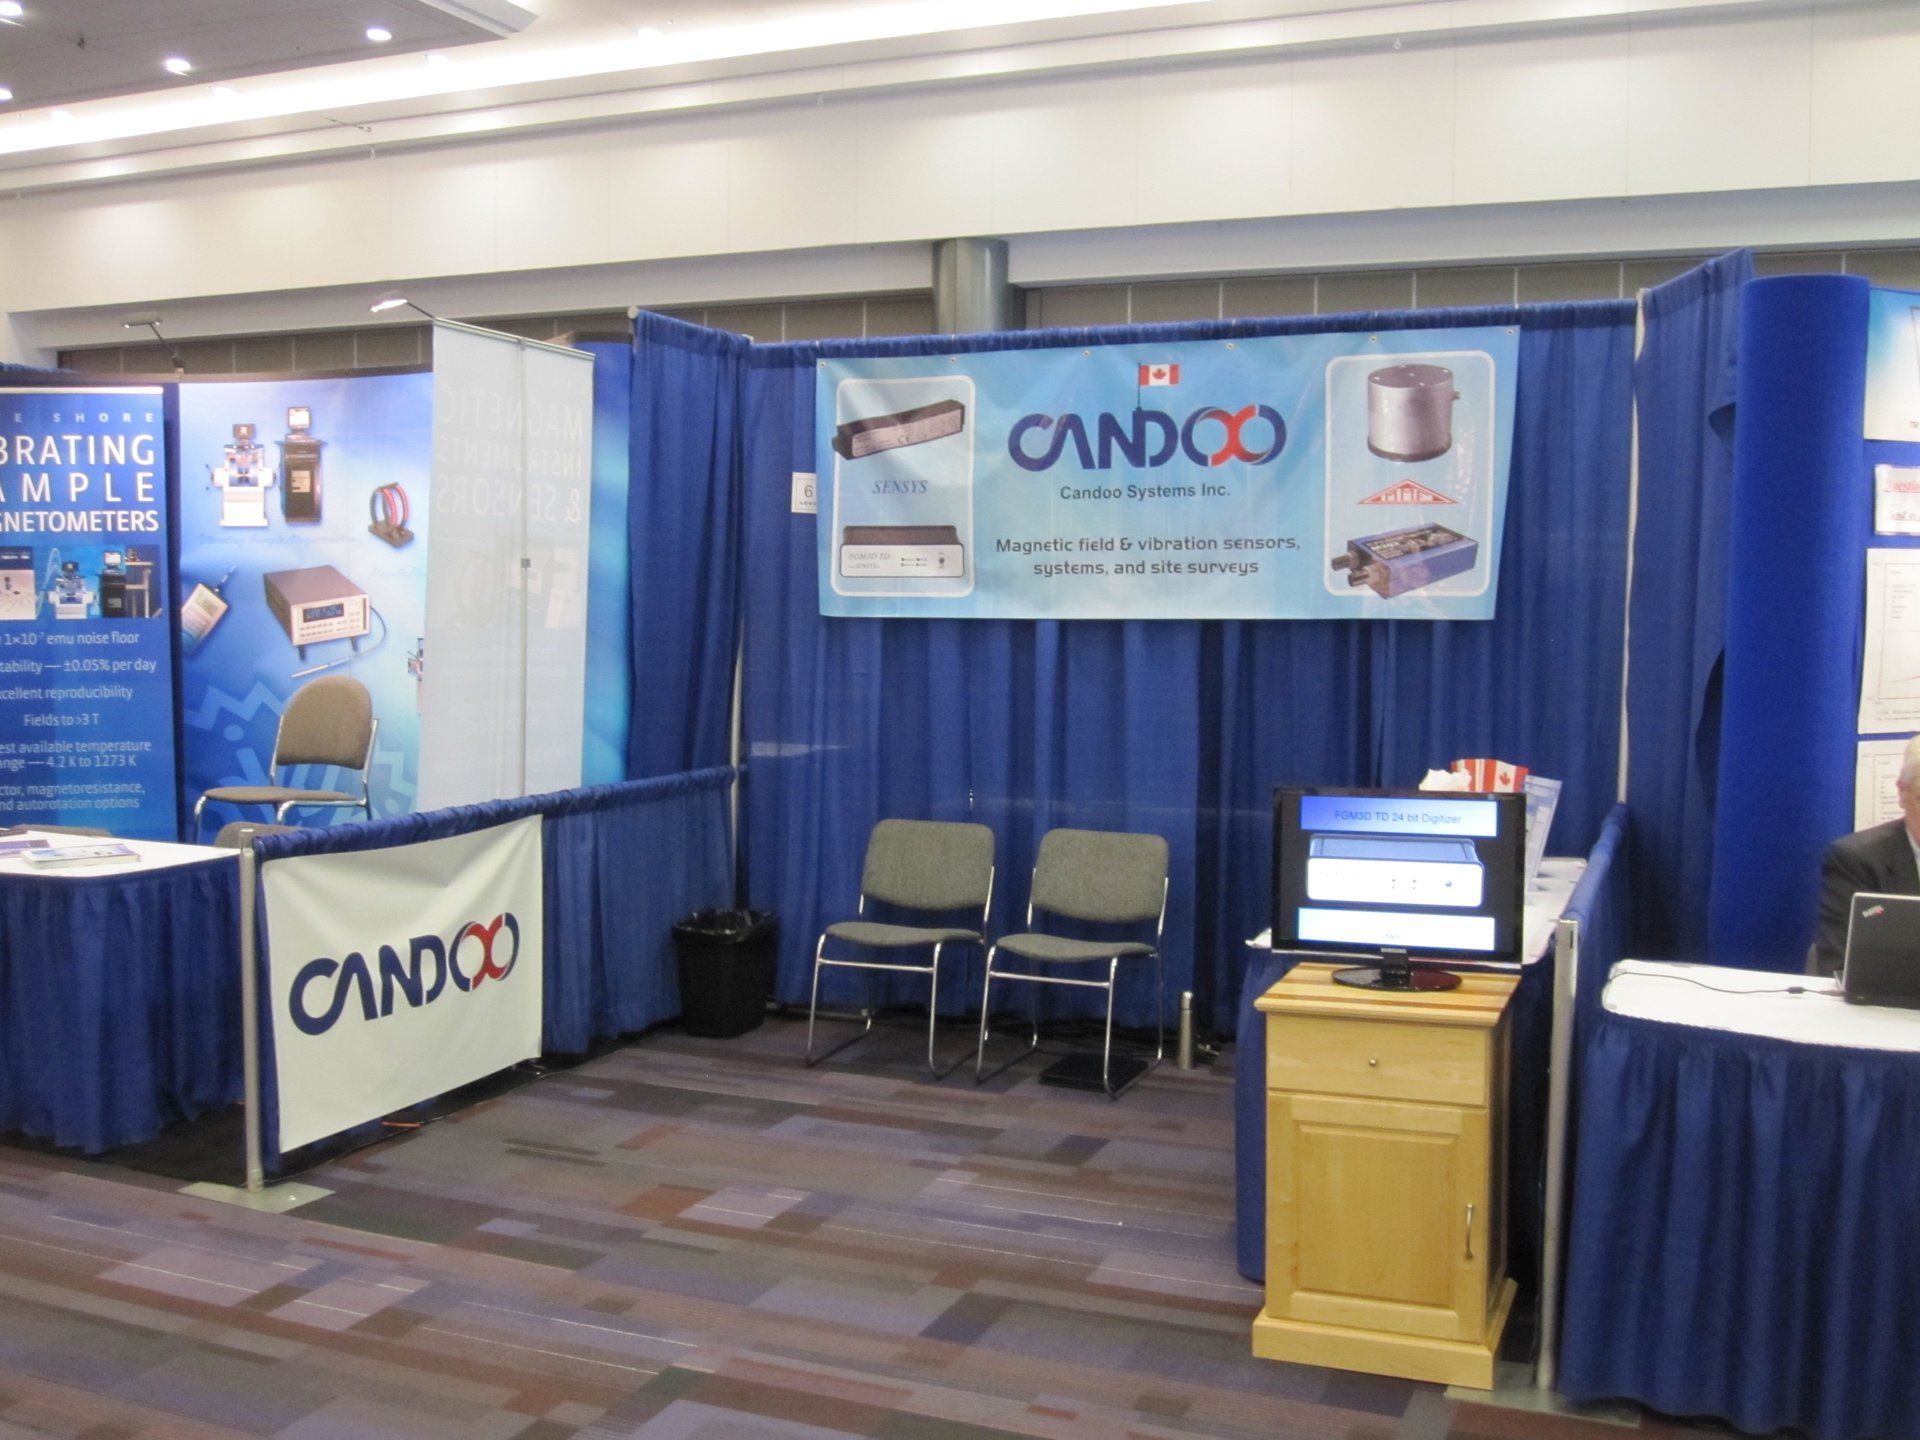 About Candoo Systems Inc.